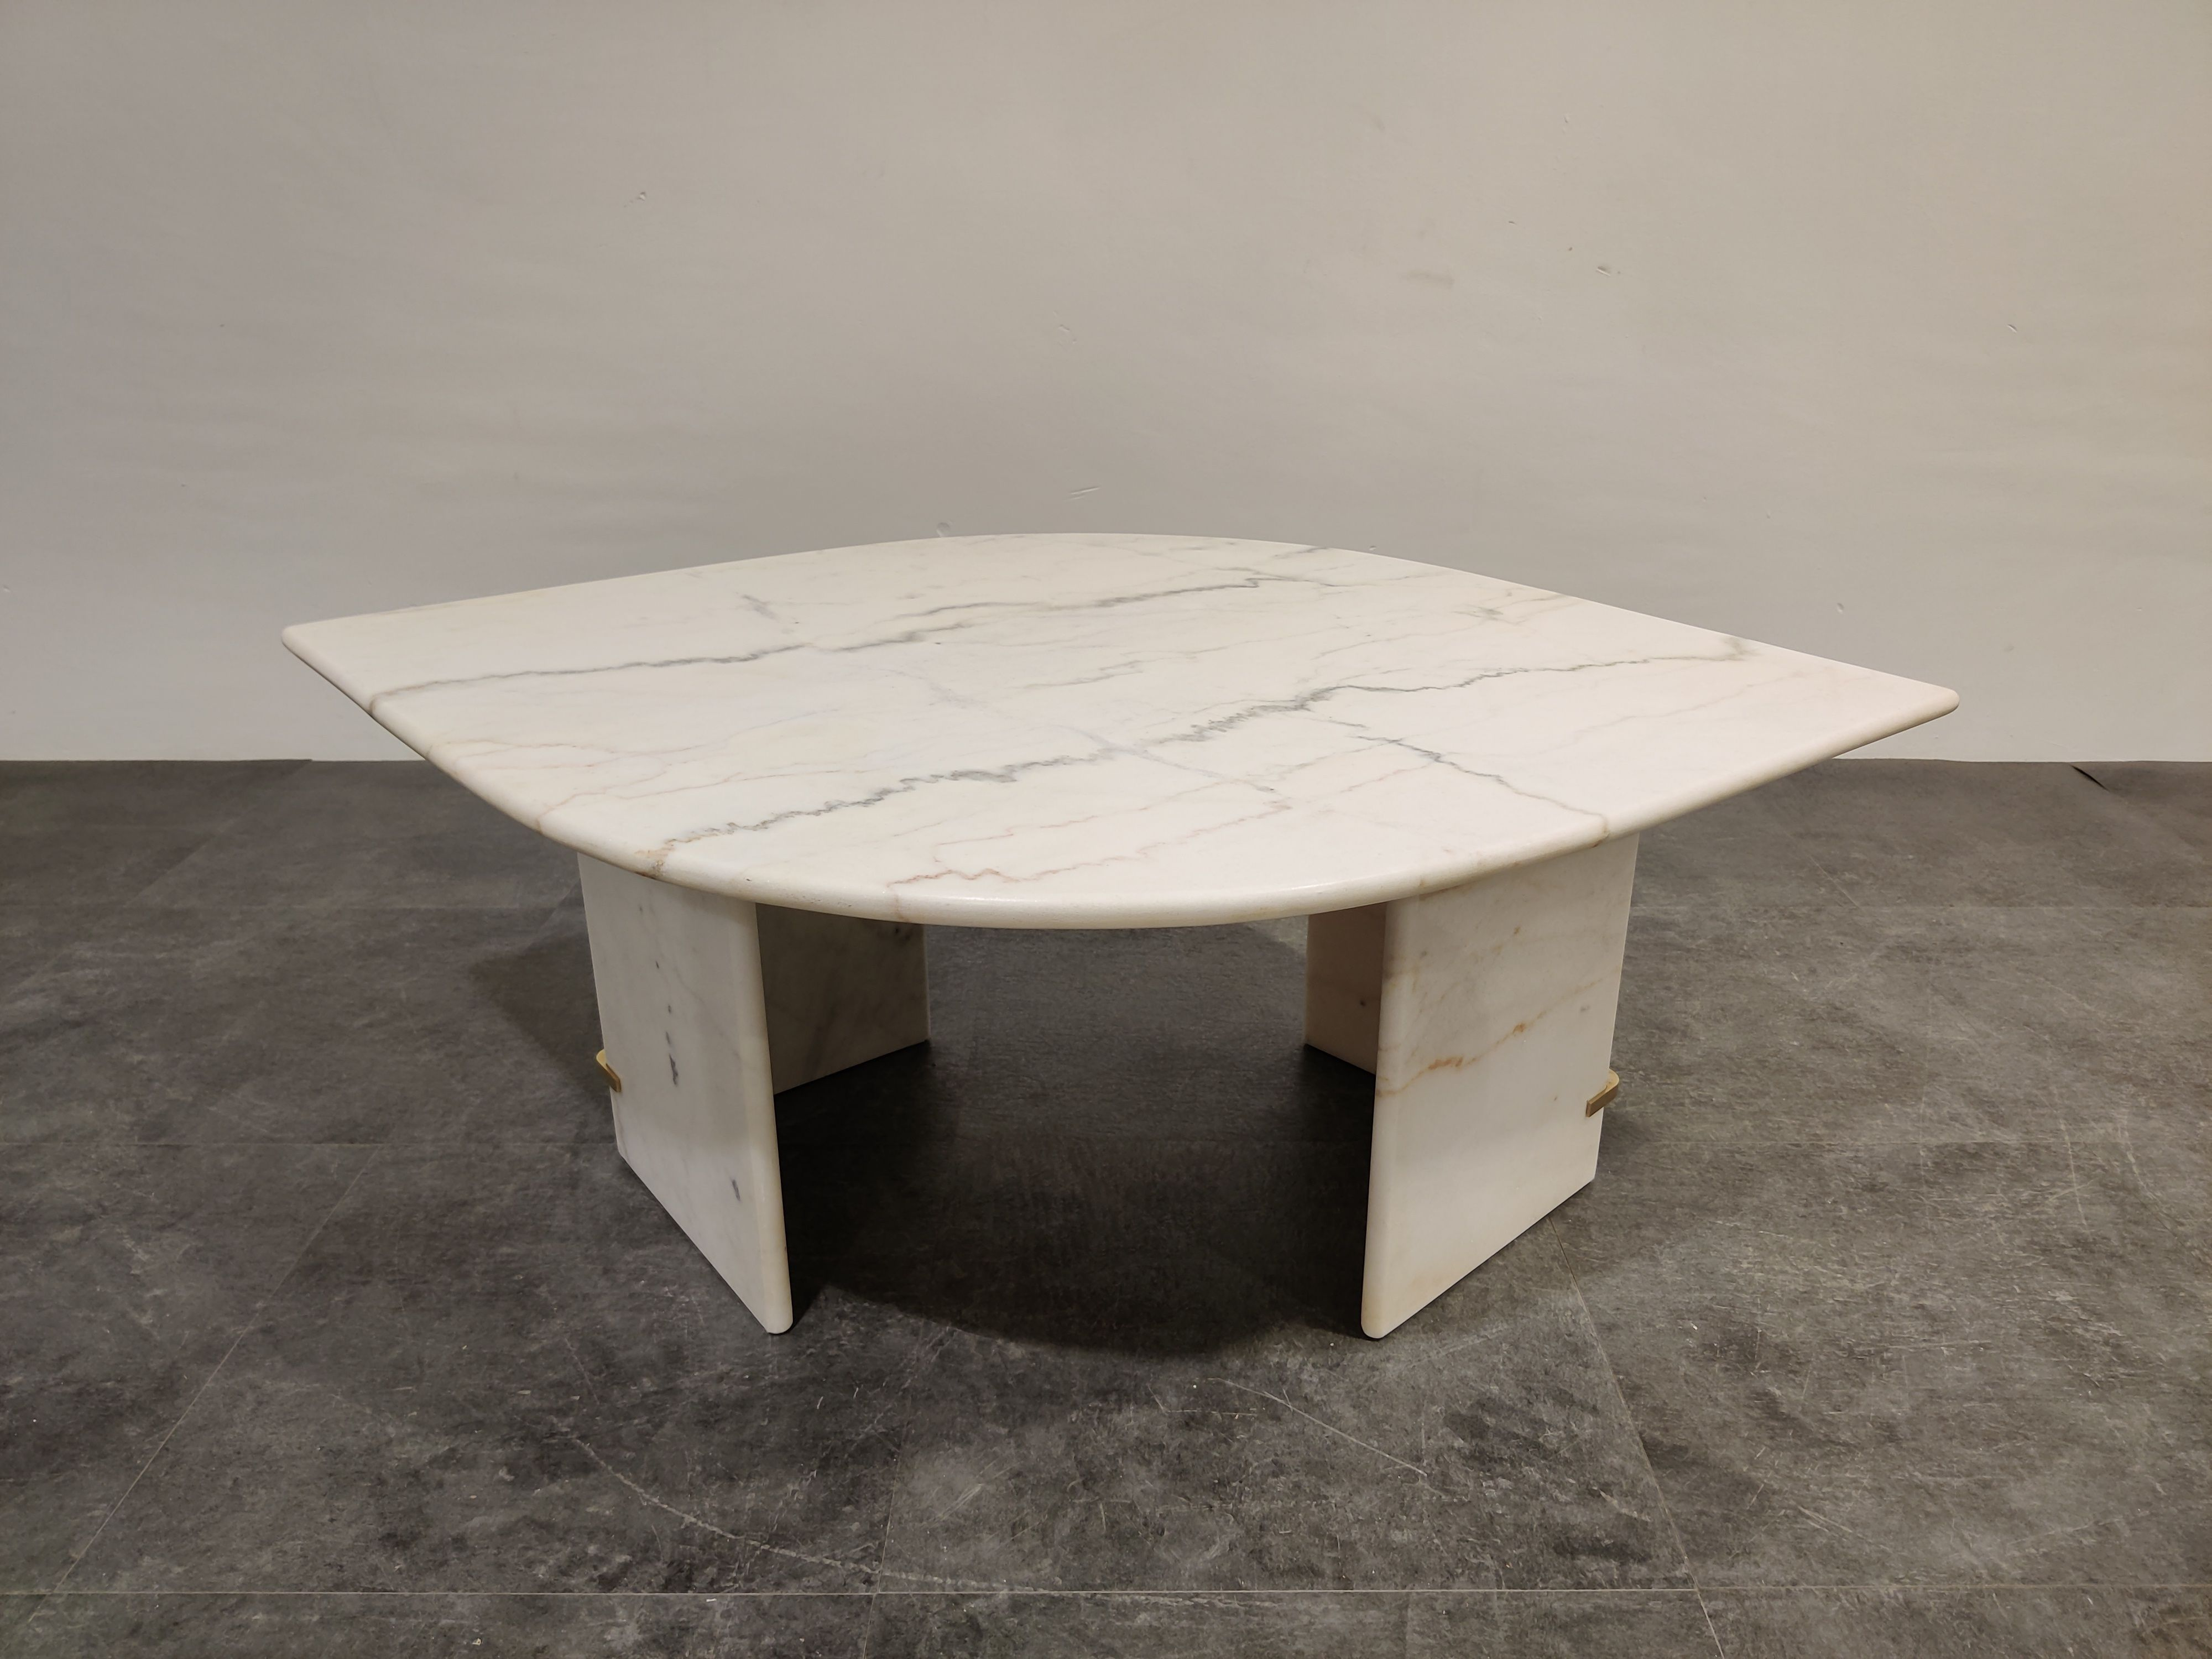 Vintage White Marble Coffee Table 1970s In 2020 Coffee Table Retro Coffee Tables Vintage Bedside Table